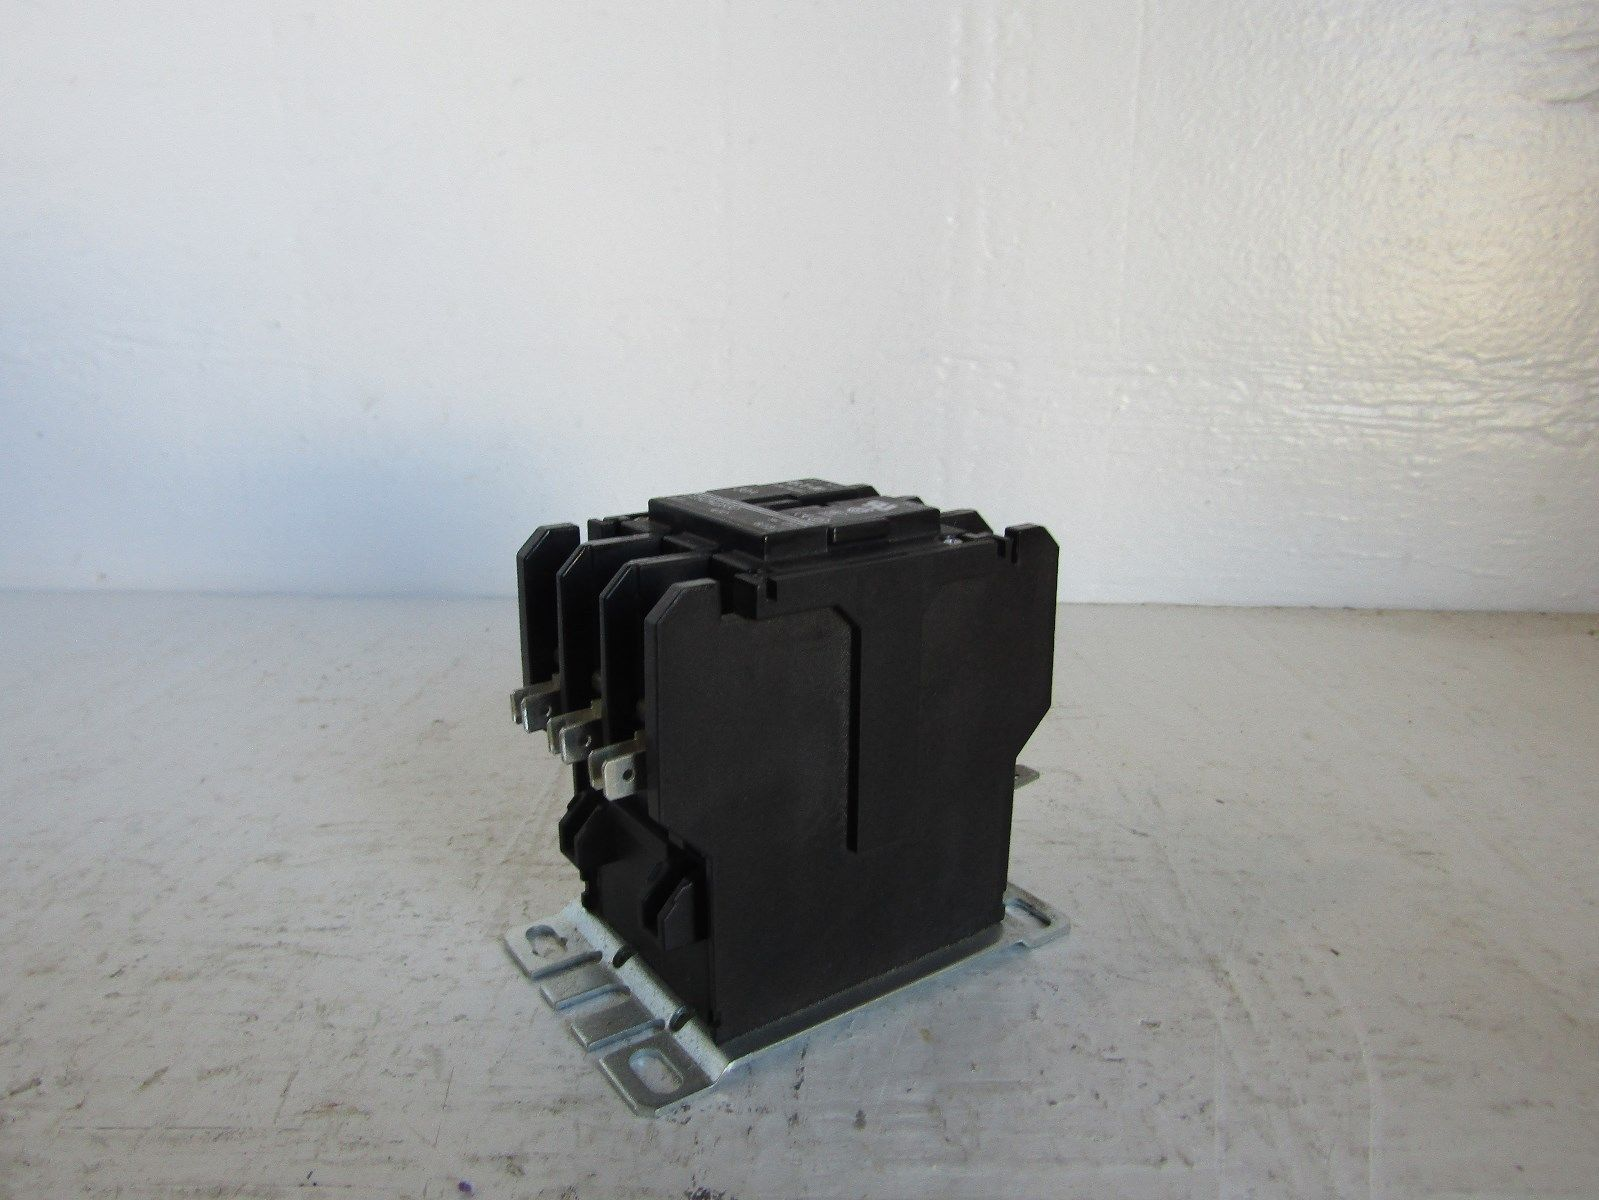 CUTLER HAMMER C25DND330 30 AMP 3 POLE CONTACTOR 120 VOLT COIL 331989252131 2?fit\=1000%2C750\&ssl\=1 c25dnd330 wiring diagram 3 phase contactor wiring diagram start Eaton C25dnf340 Contactor at readyjetset.co